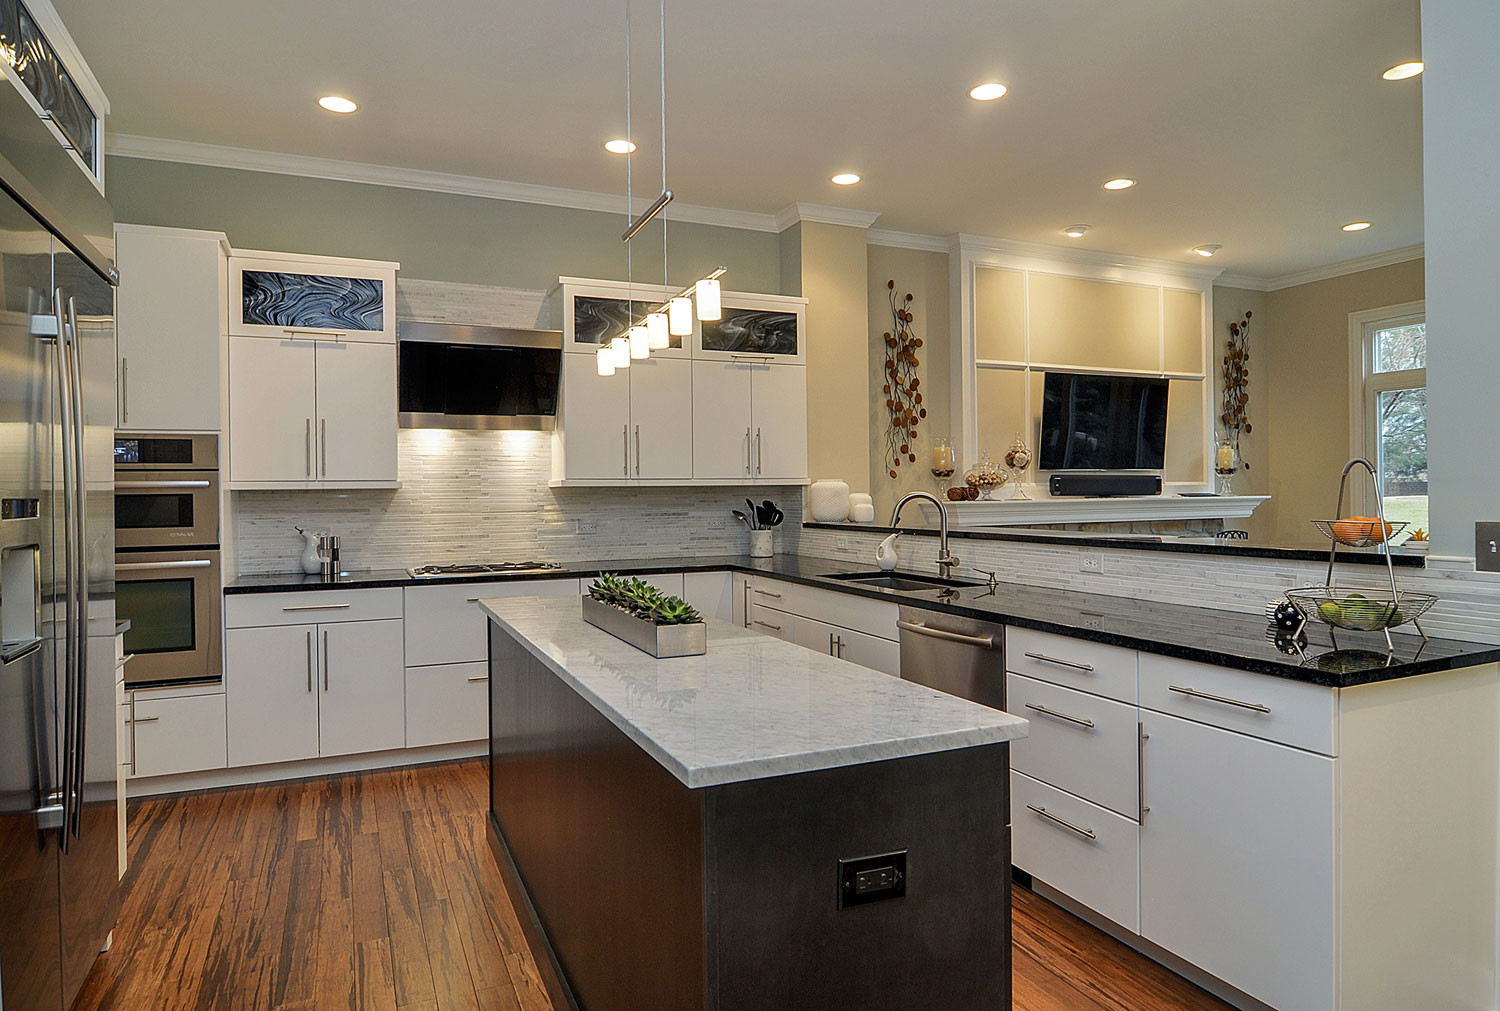 Best ideas about Remodel Kitchen Ideas . Save or Pin Doug & Natalie s Kitchen Remodel Now.